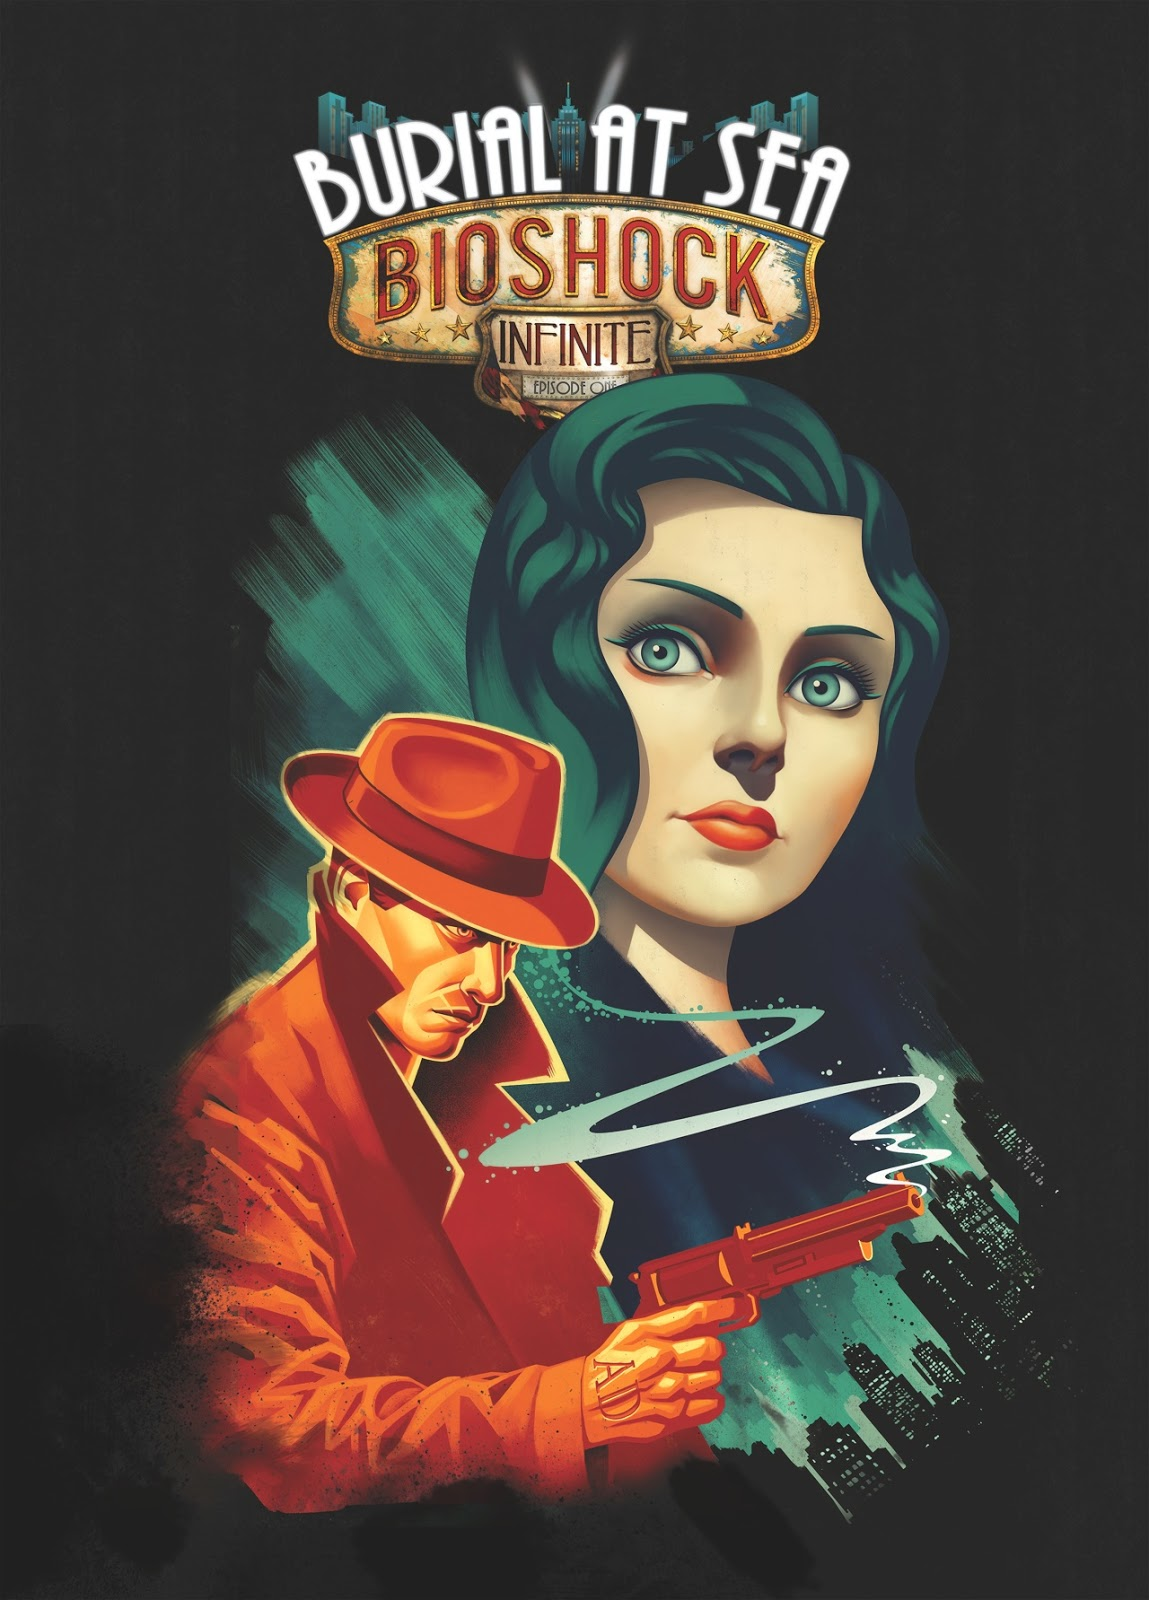 BioShock Infinite : Burial at Sea Episode 2 - PC Reloaded